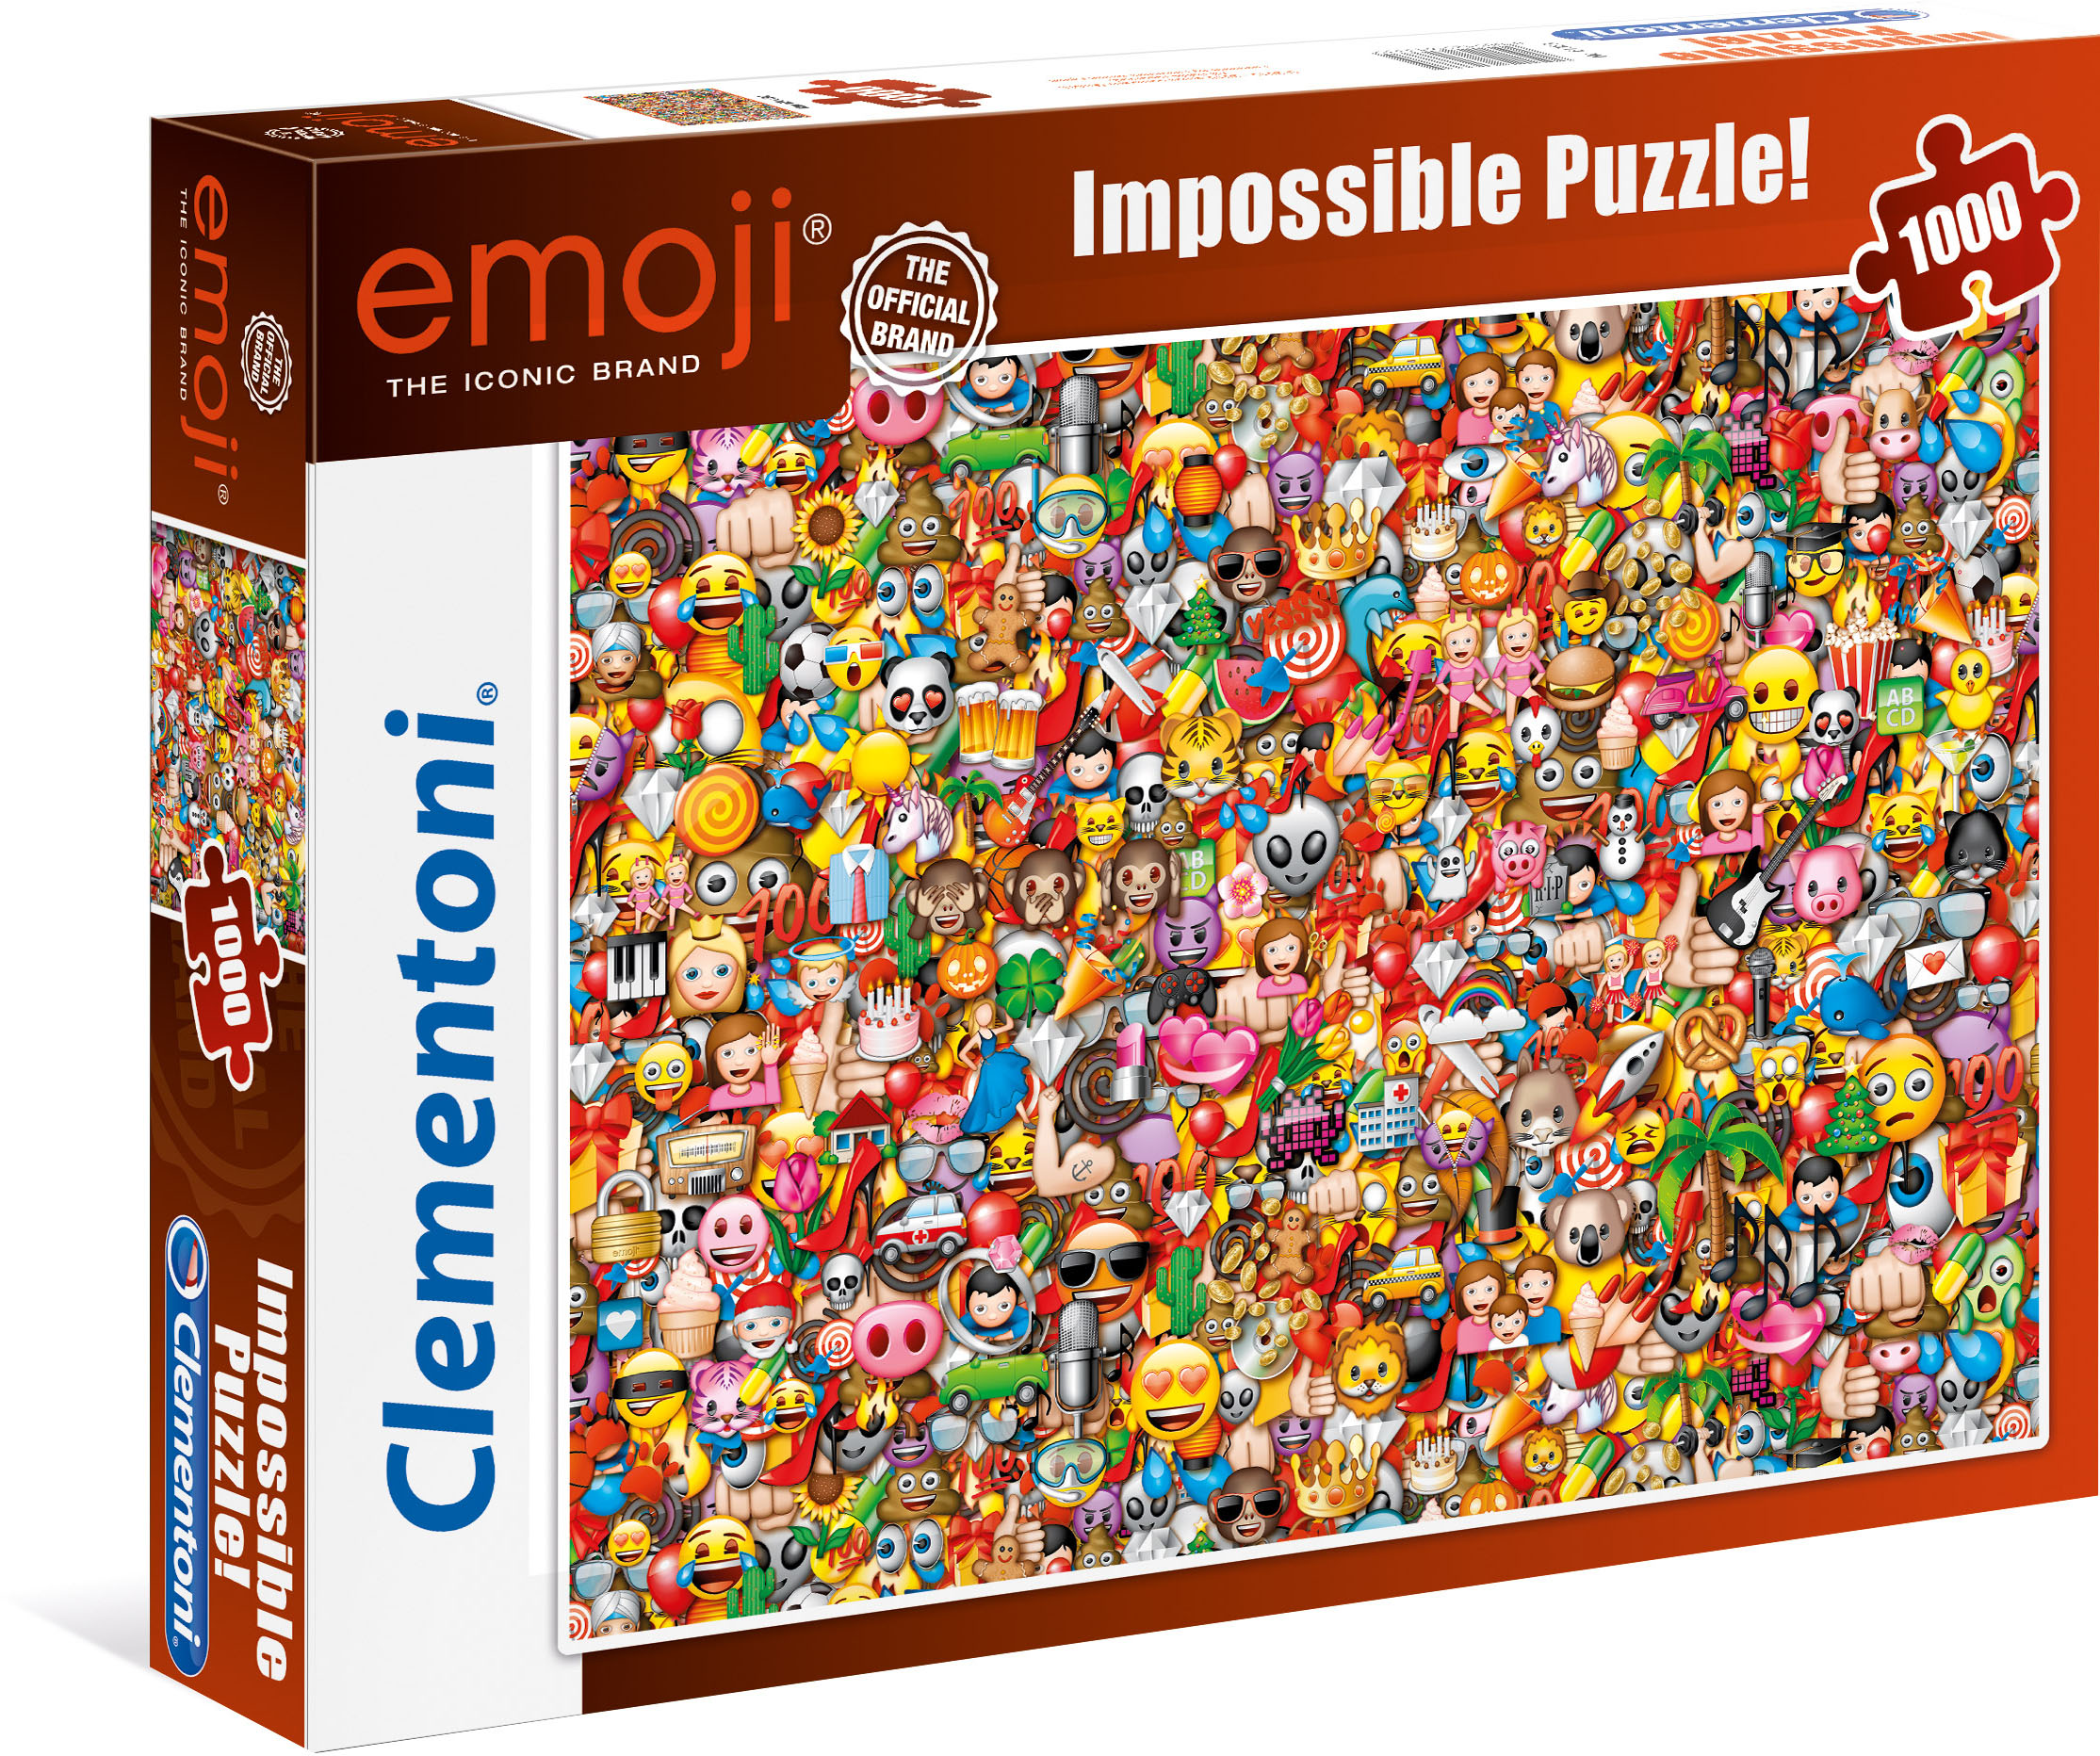 Clementoni Puzzle Impossible Collection - Emoji, Made in Europe bunt Kinder Ab 9-11 Jahren Altersempfehlung